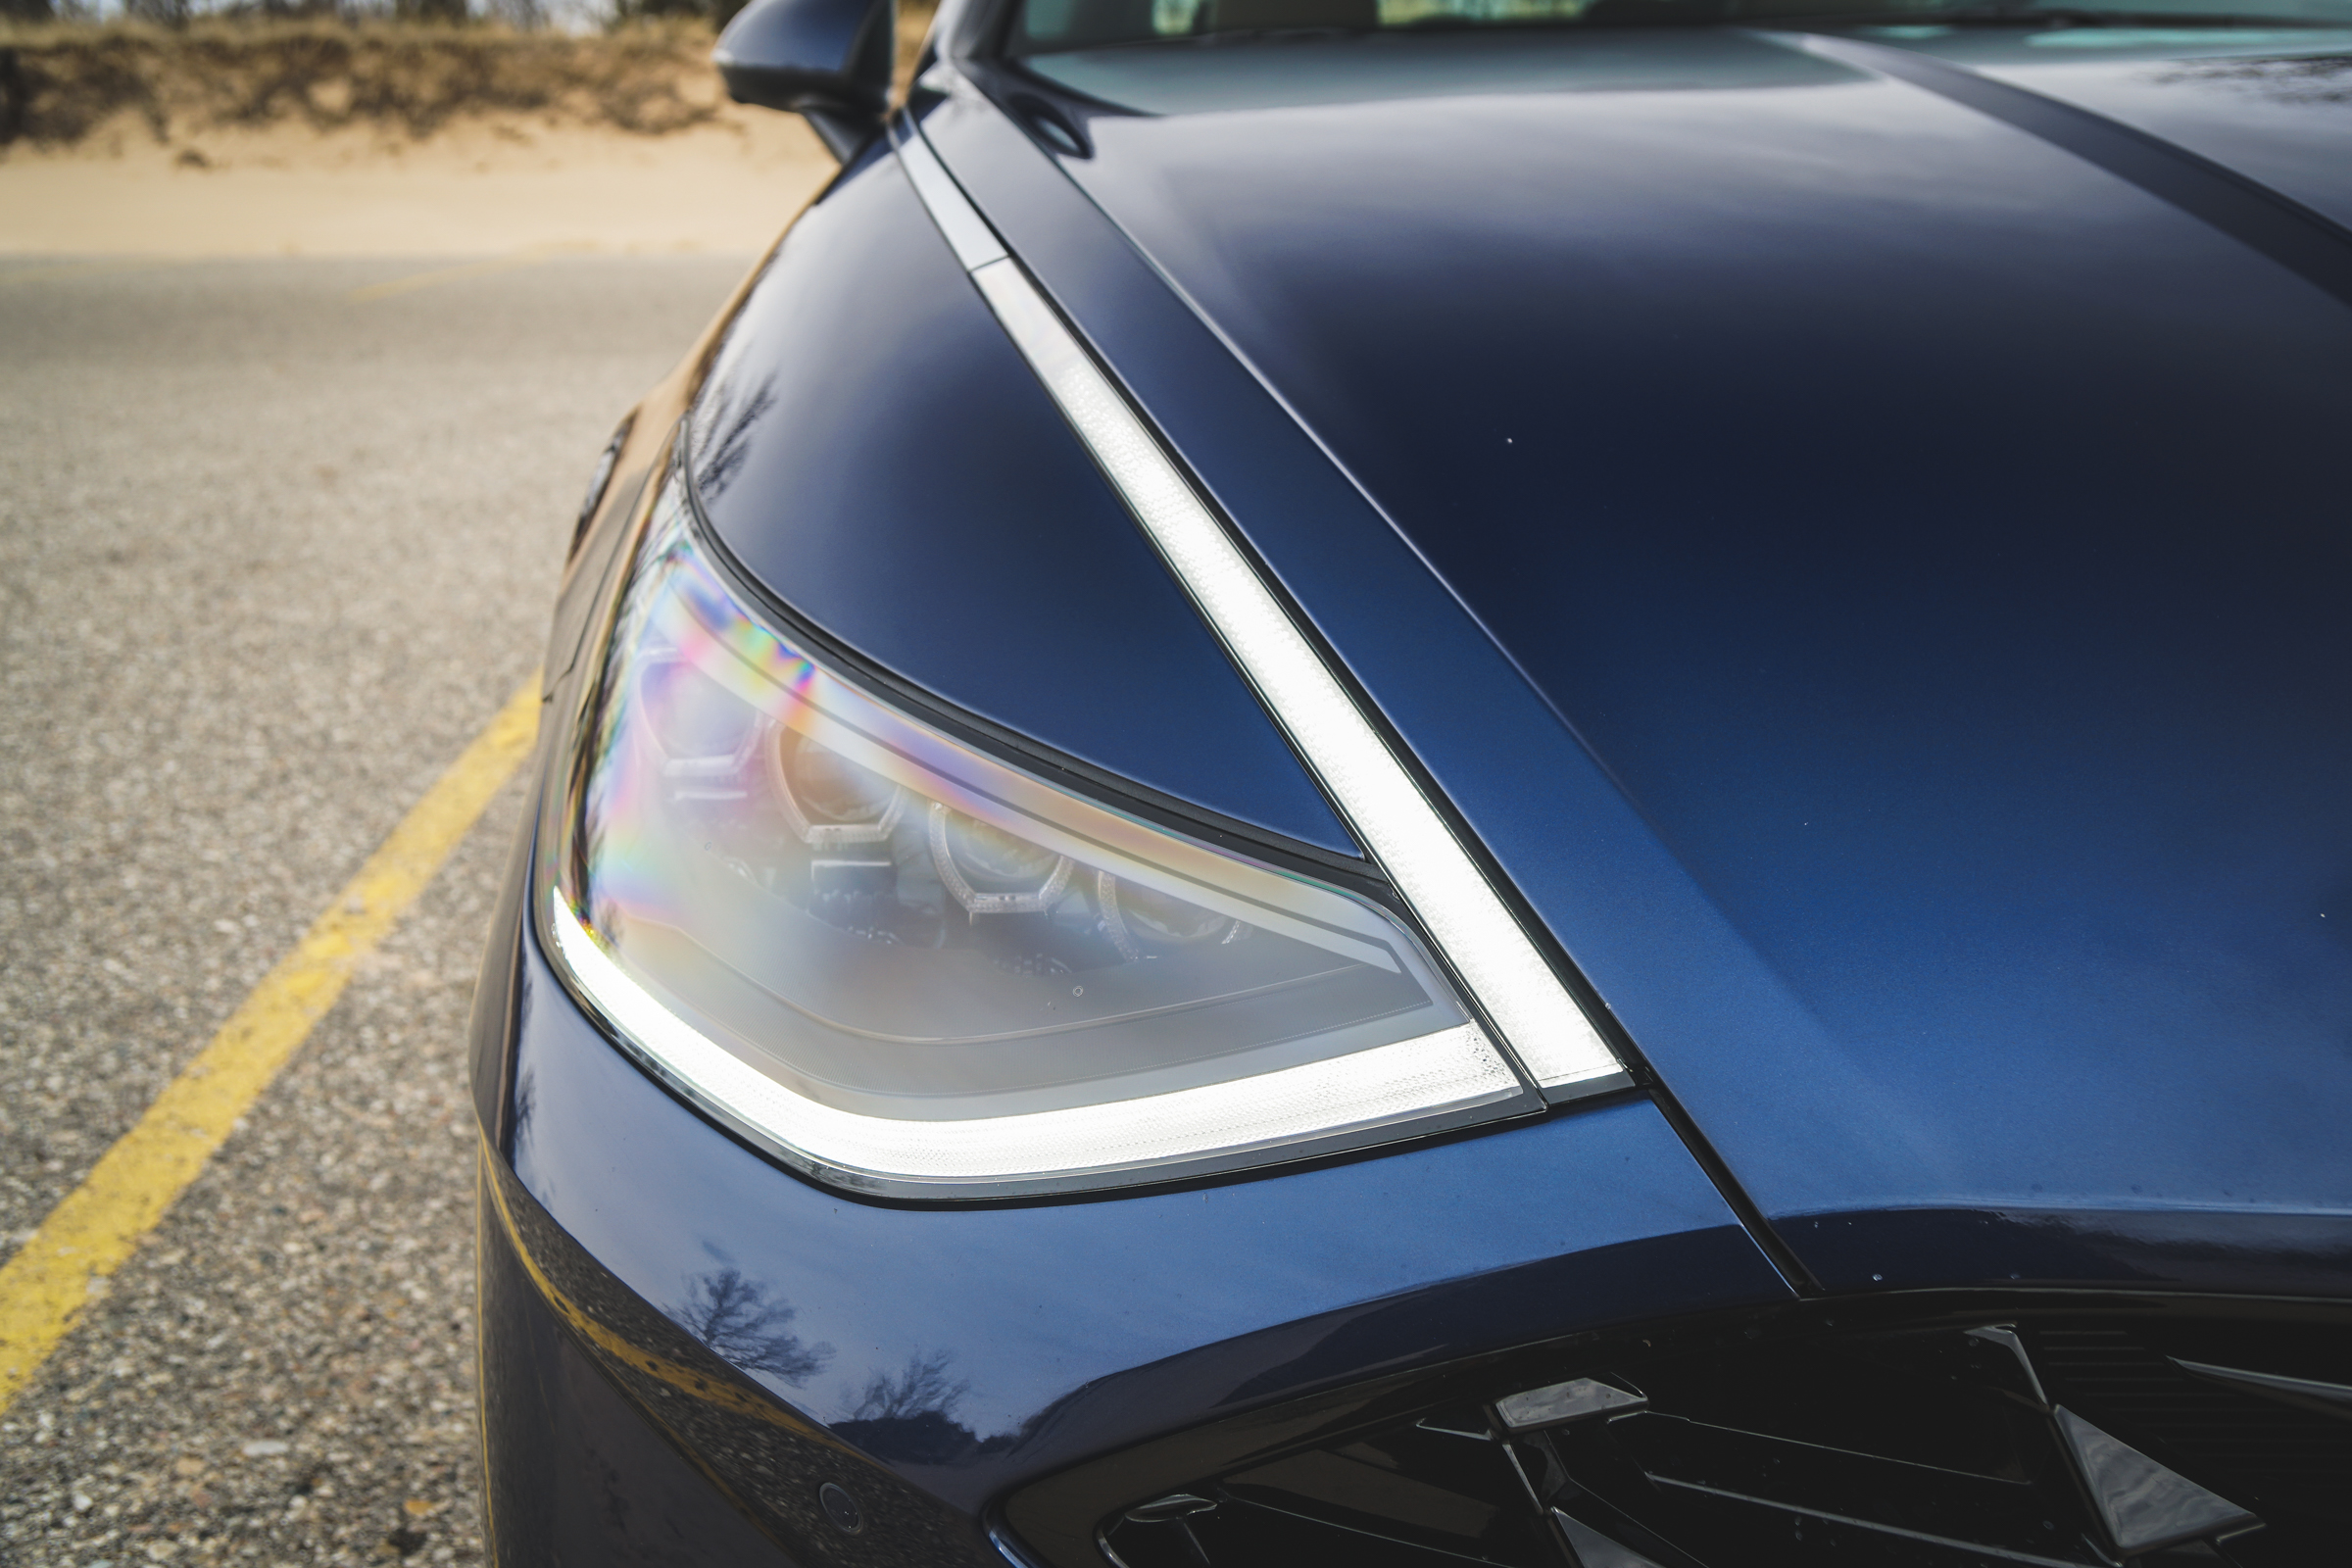 2020 Hyundai Sonata Limited headlight detail